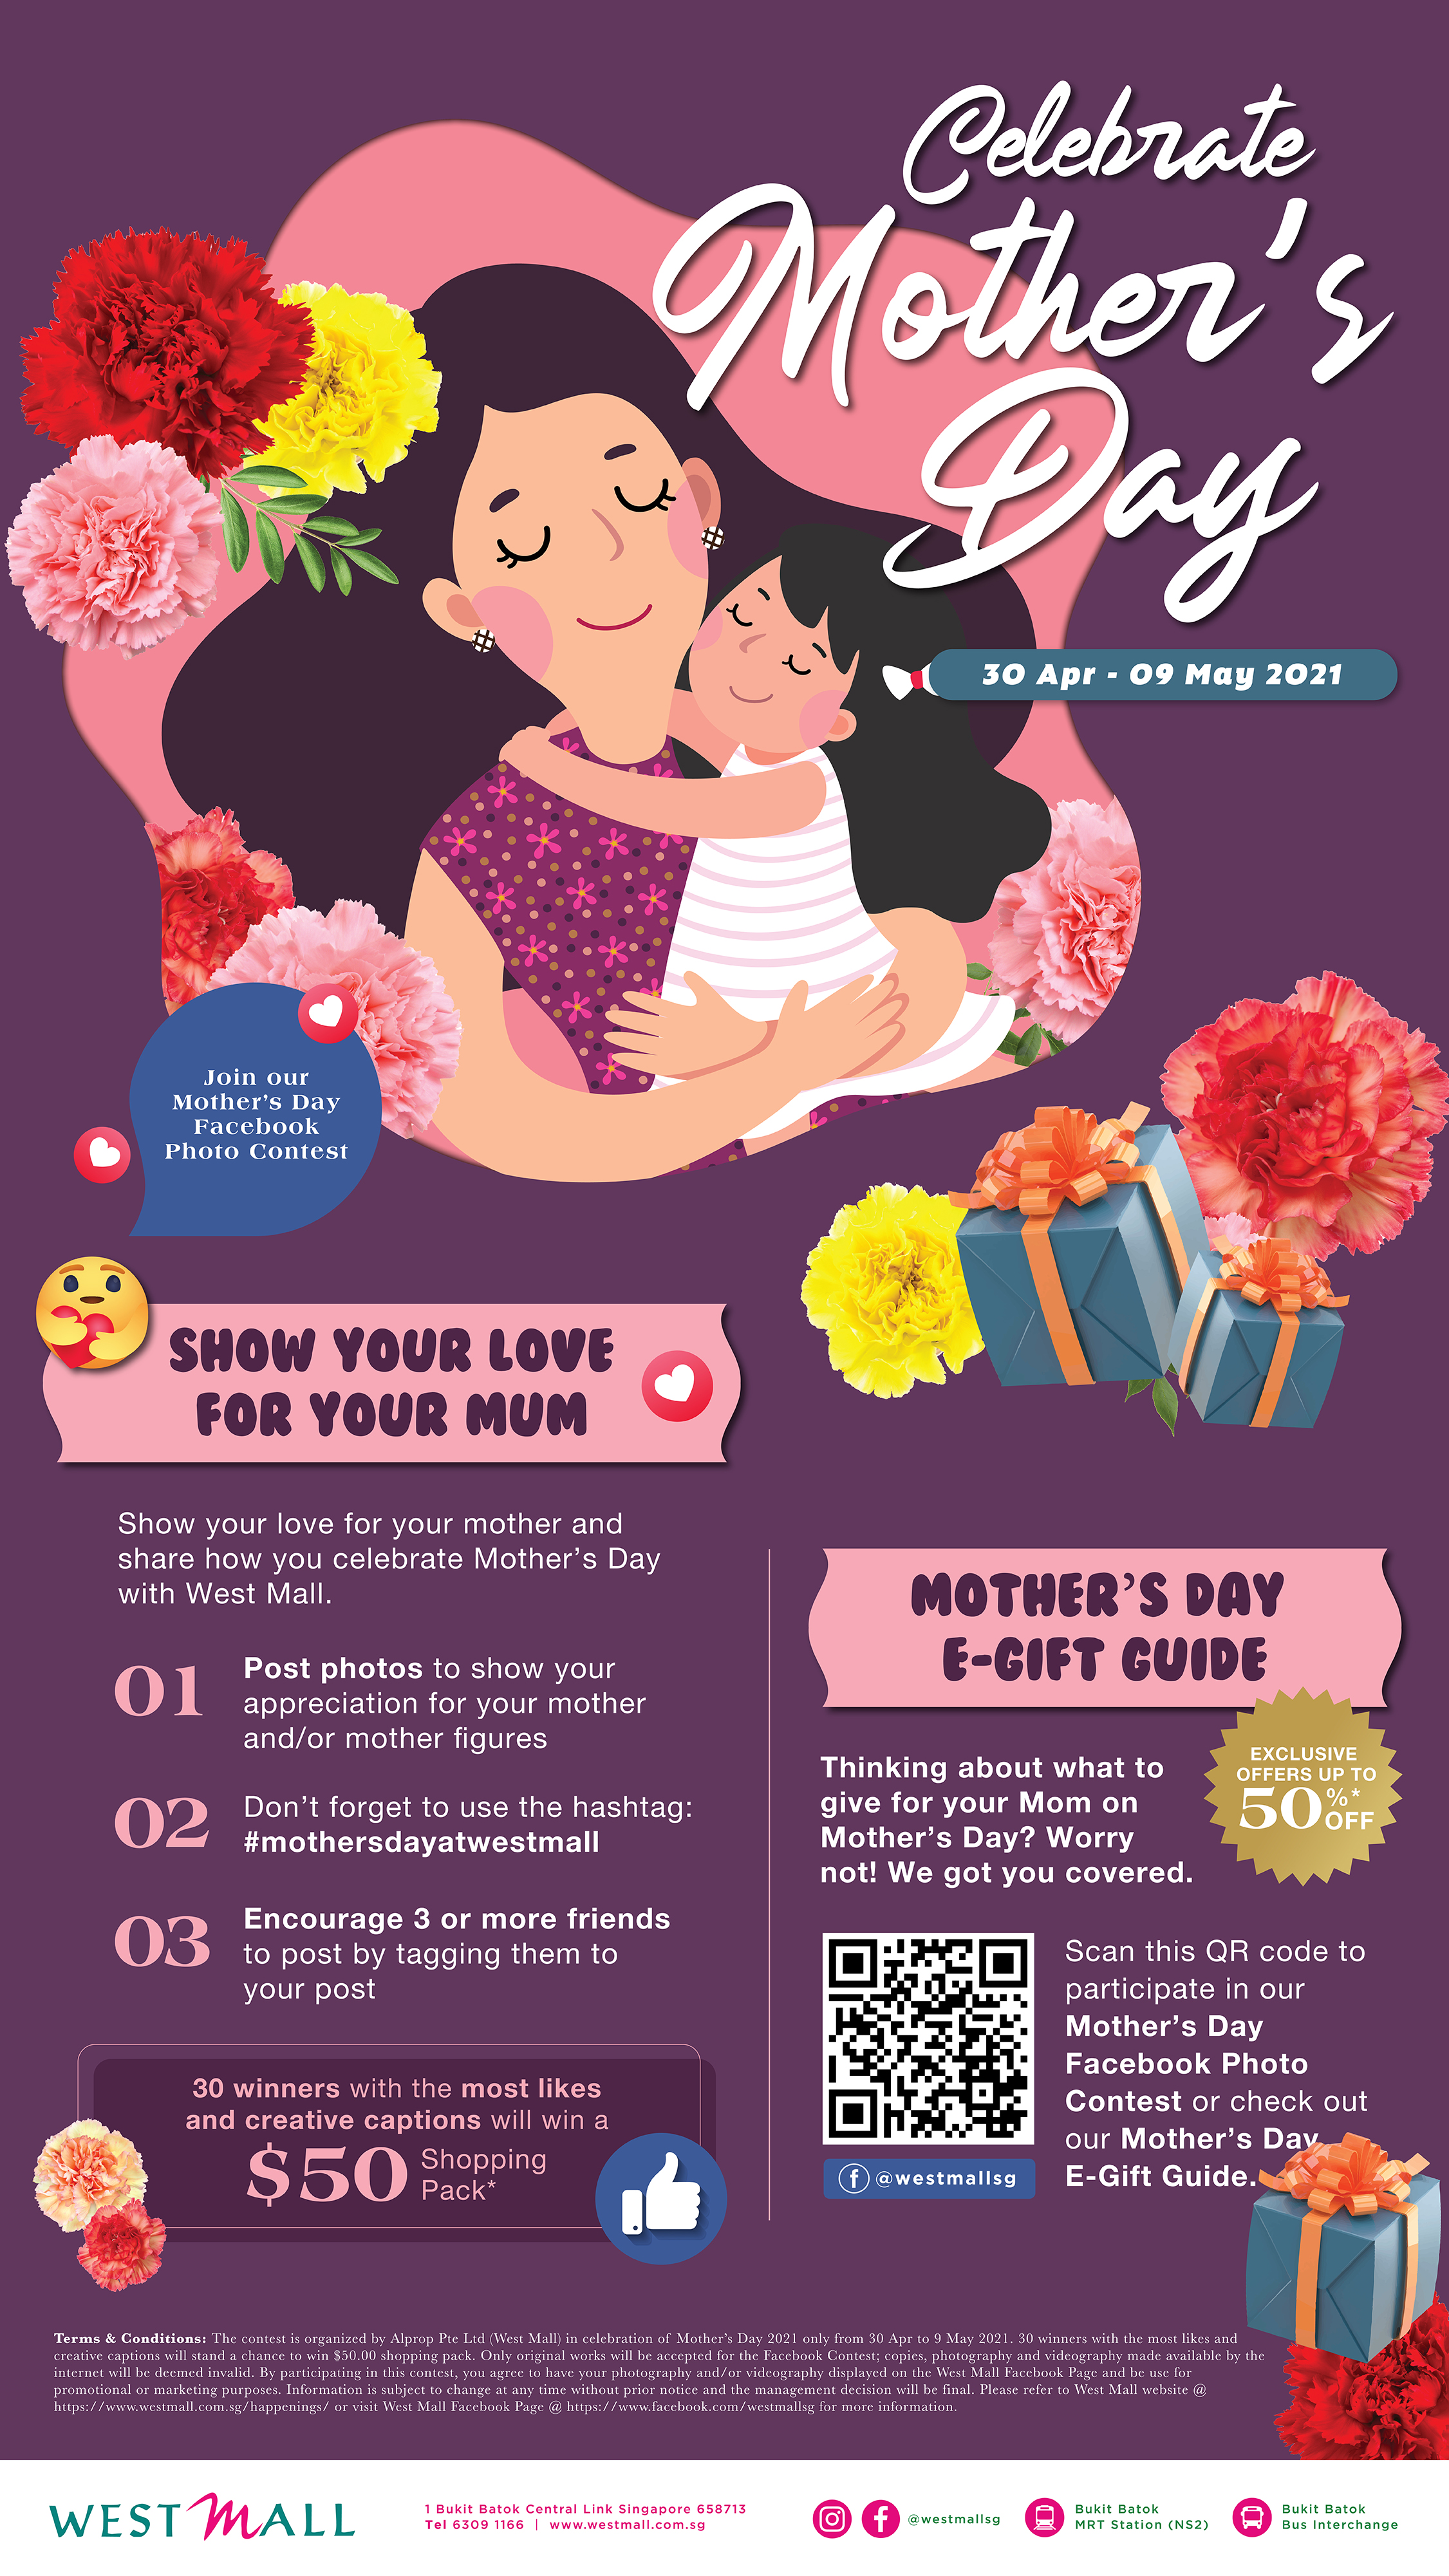 Celebrate Mother's Day (30 Apr to 9 May 2021)